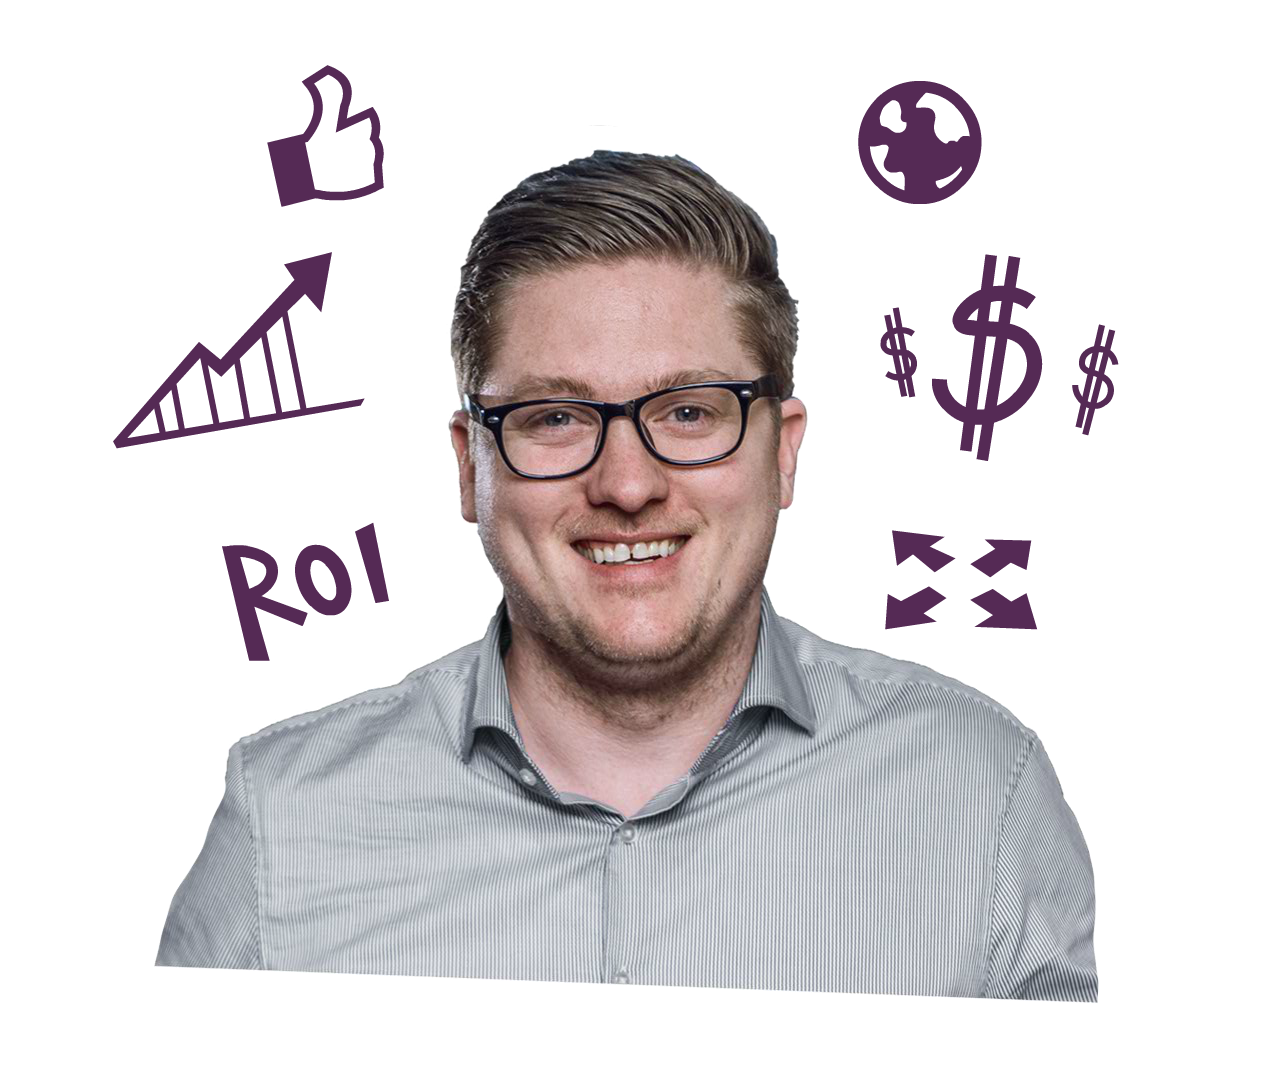 Henry Iversen is the co-founder and CCO of Boost AI